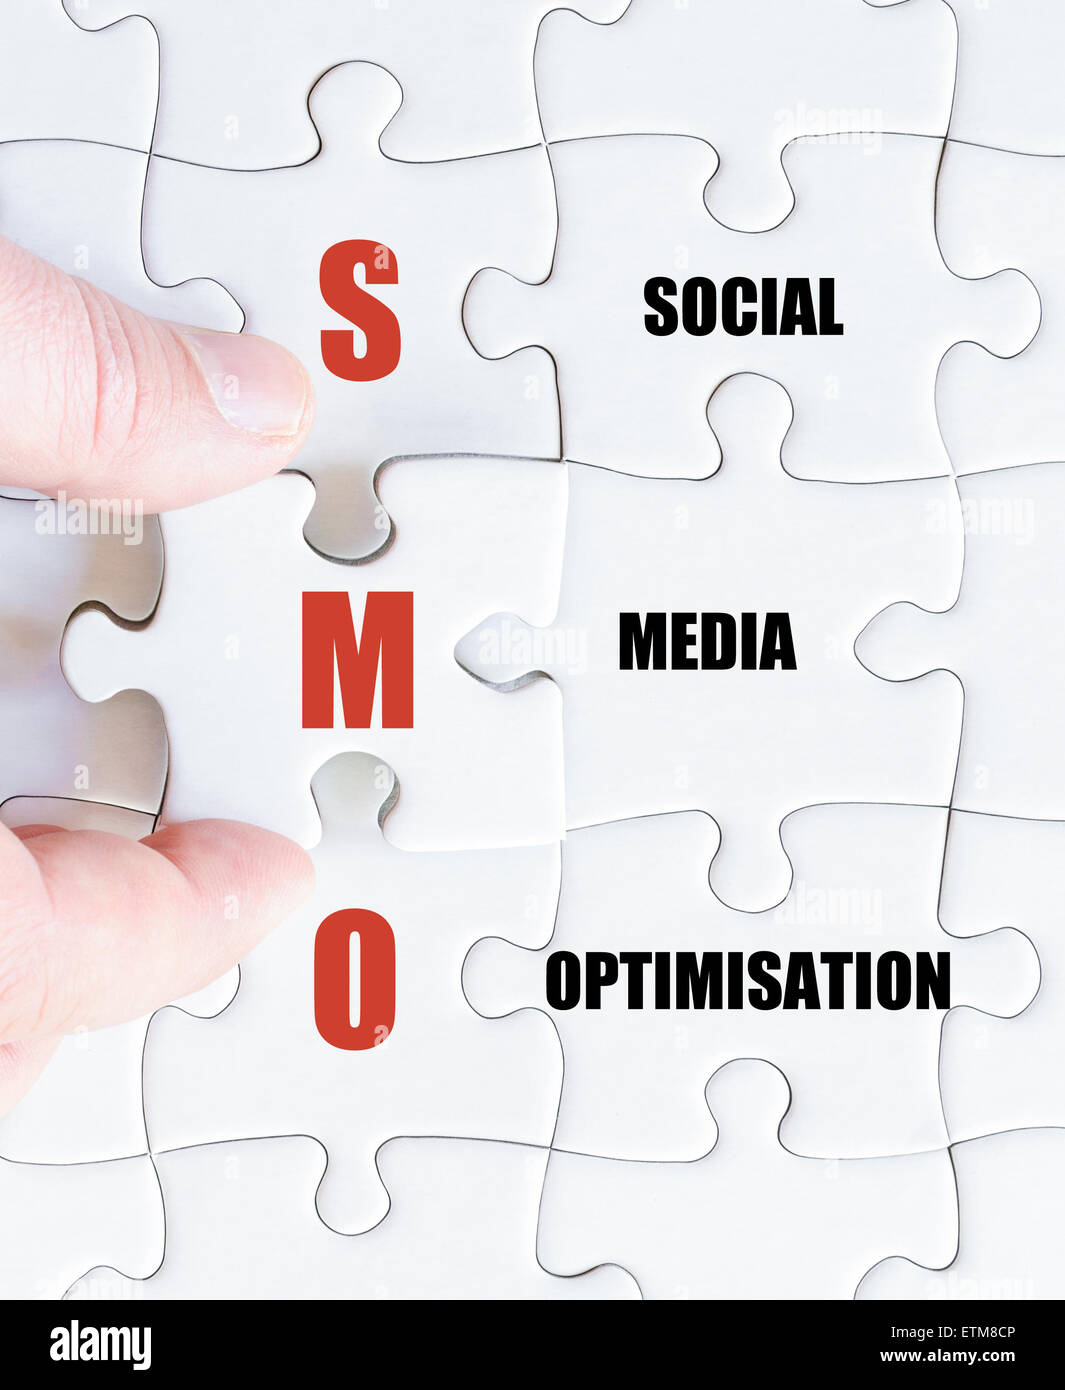 Concept image of Business Acronym SMO as Social Media Optimisation - Stock Image